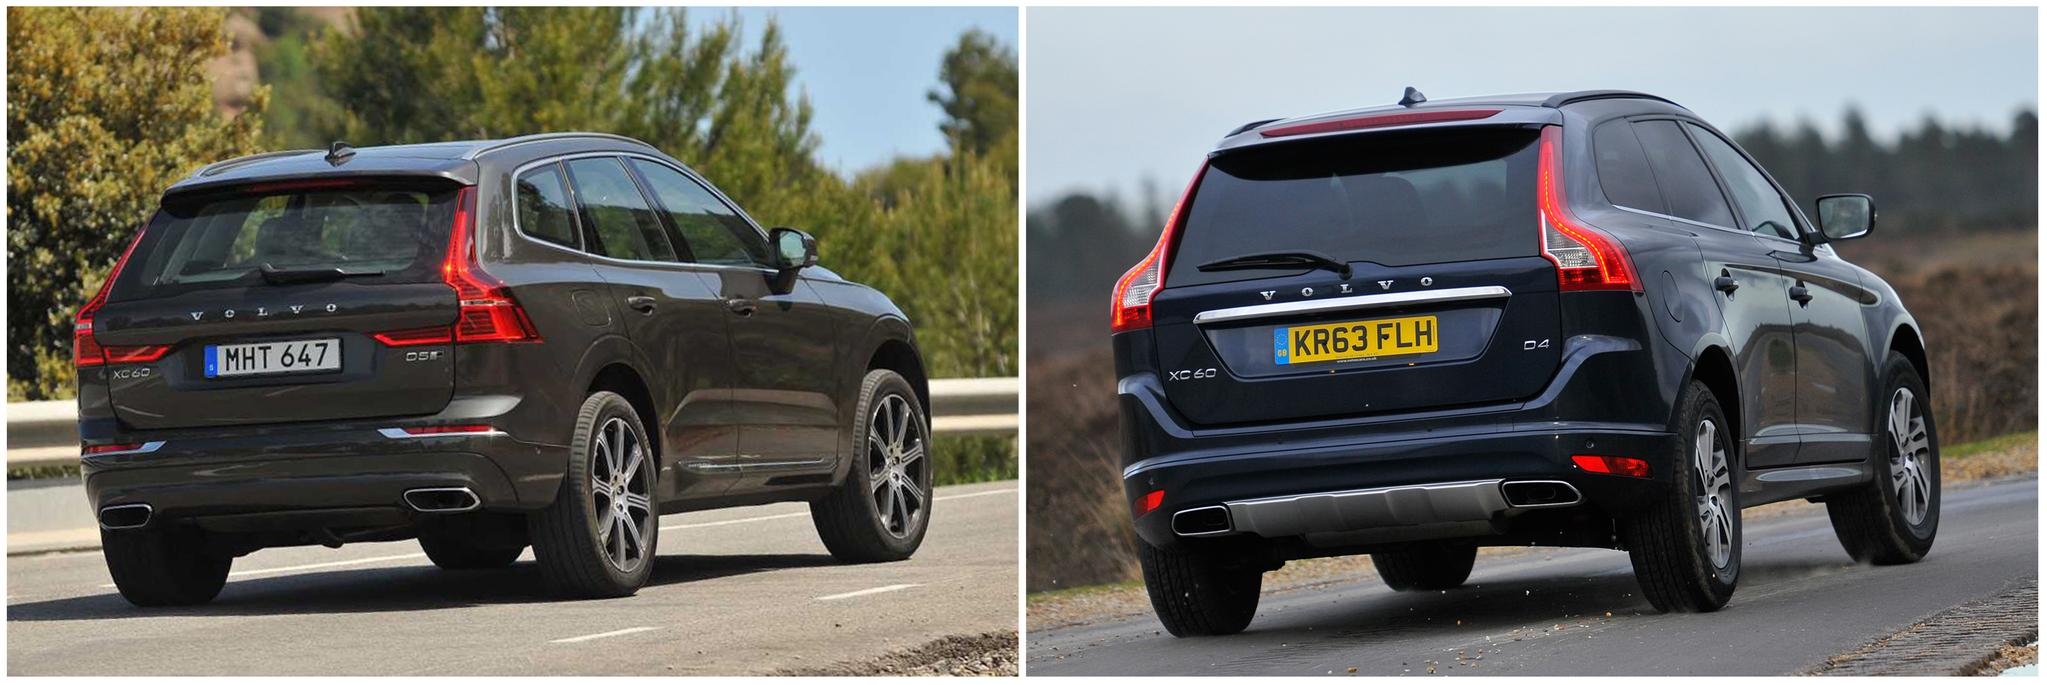 Volvo XC60: new vs old compared